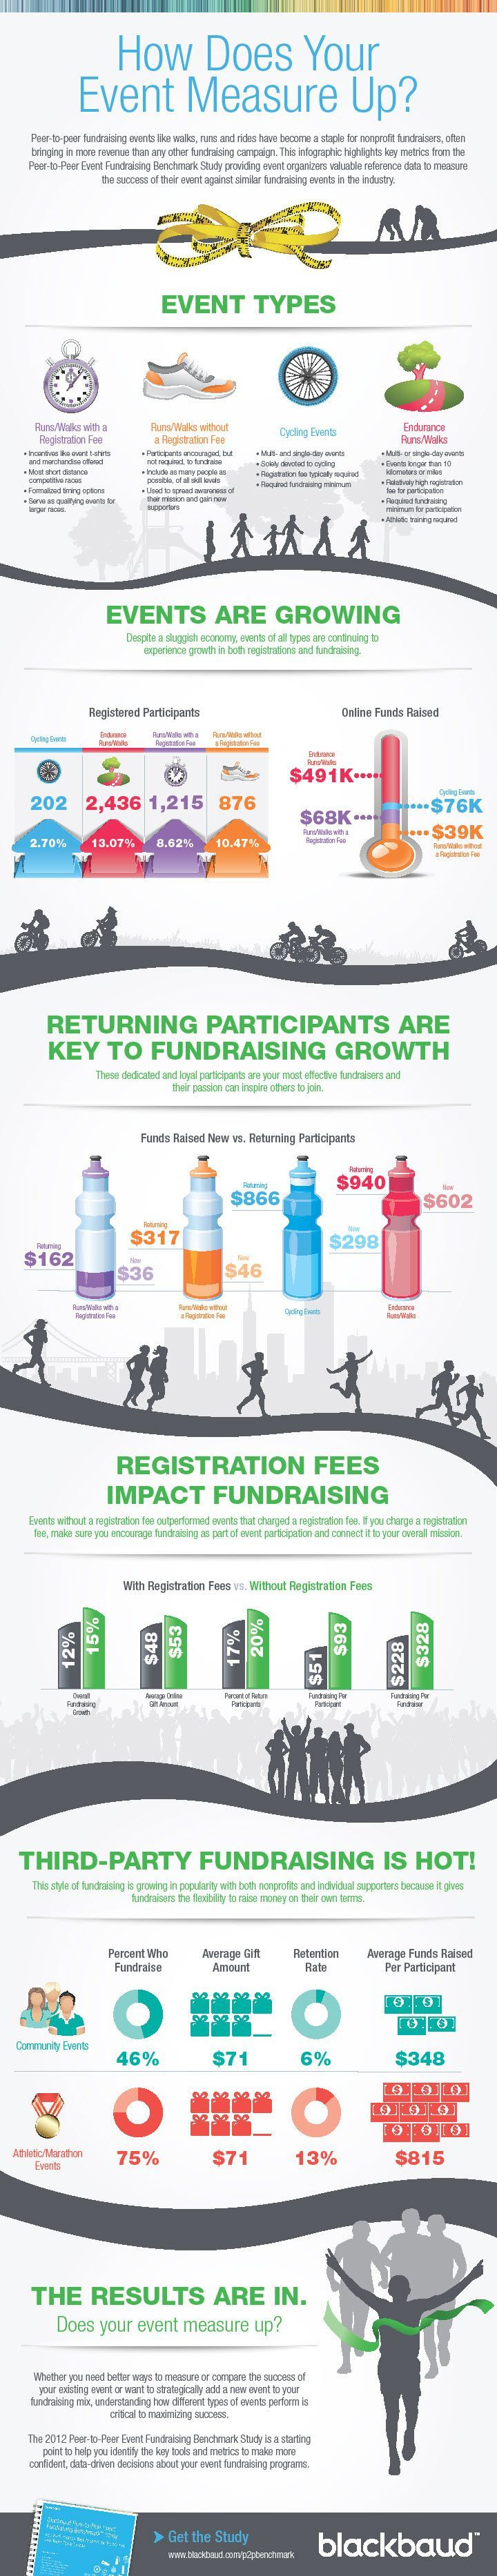 How Does Your Fundraising Event Measure Up